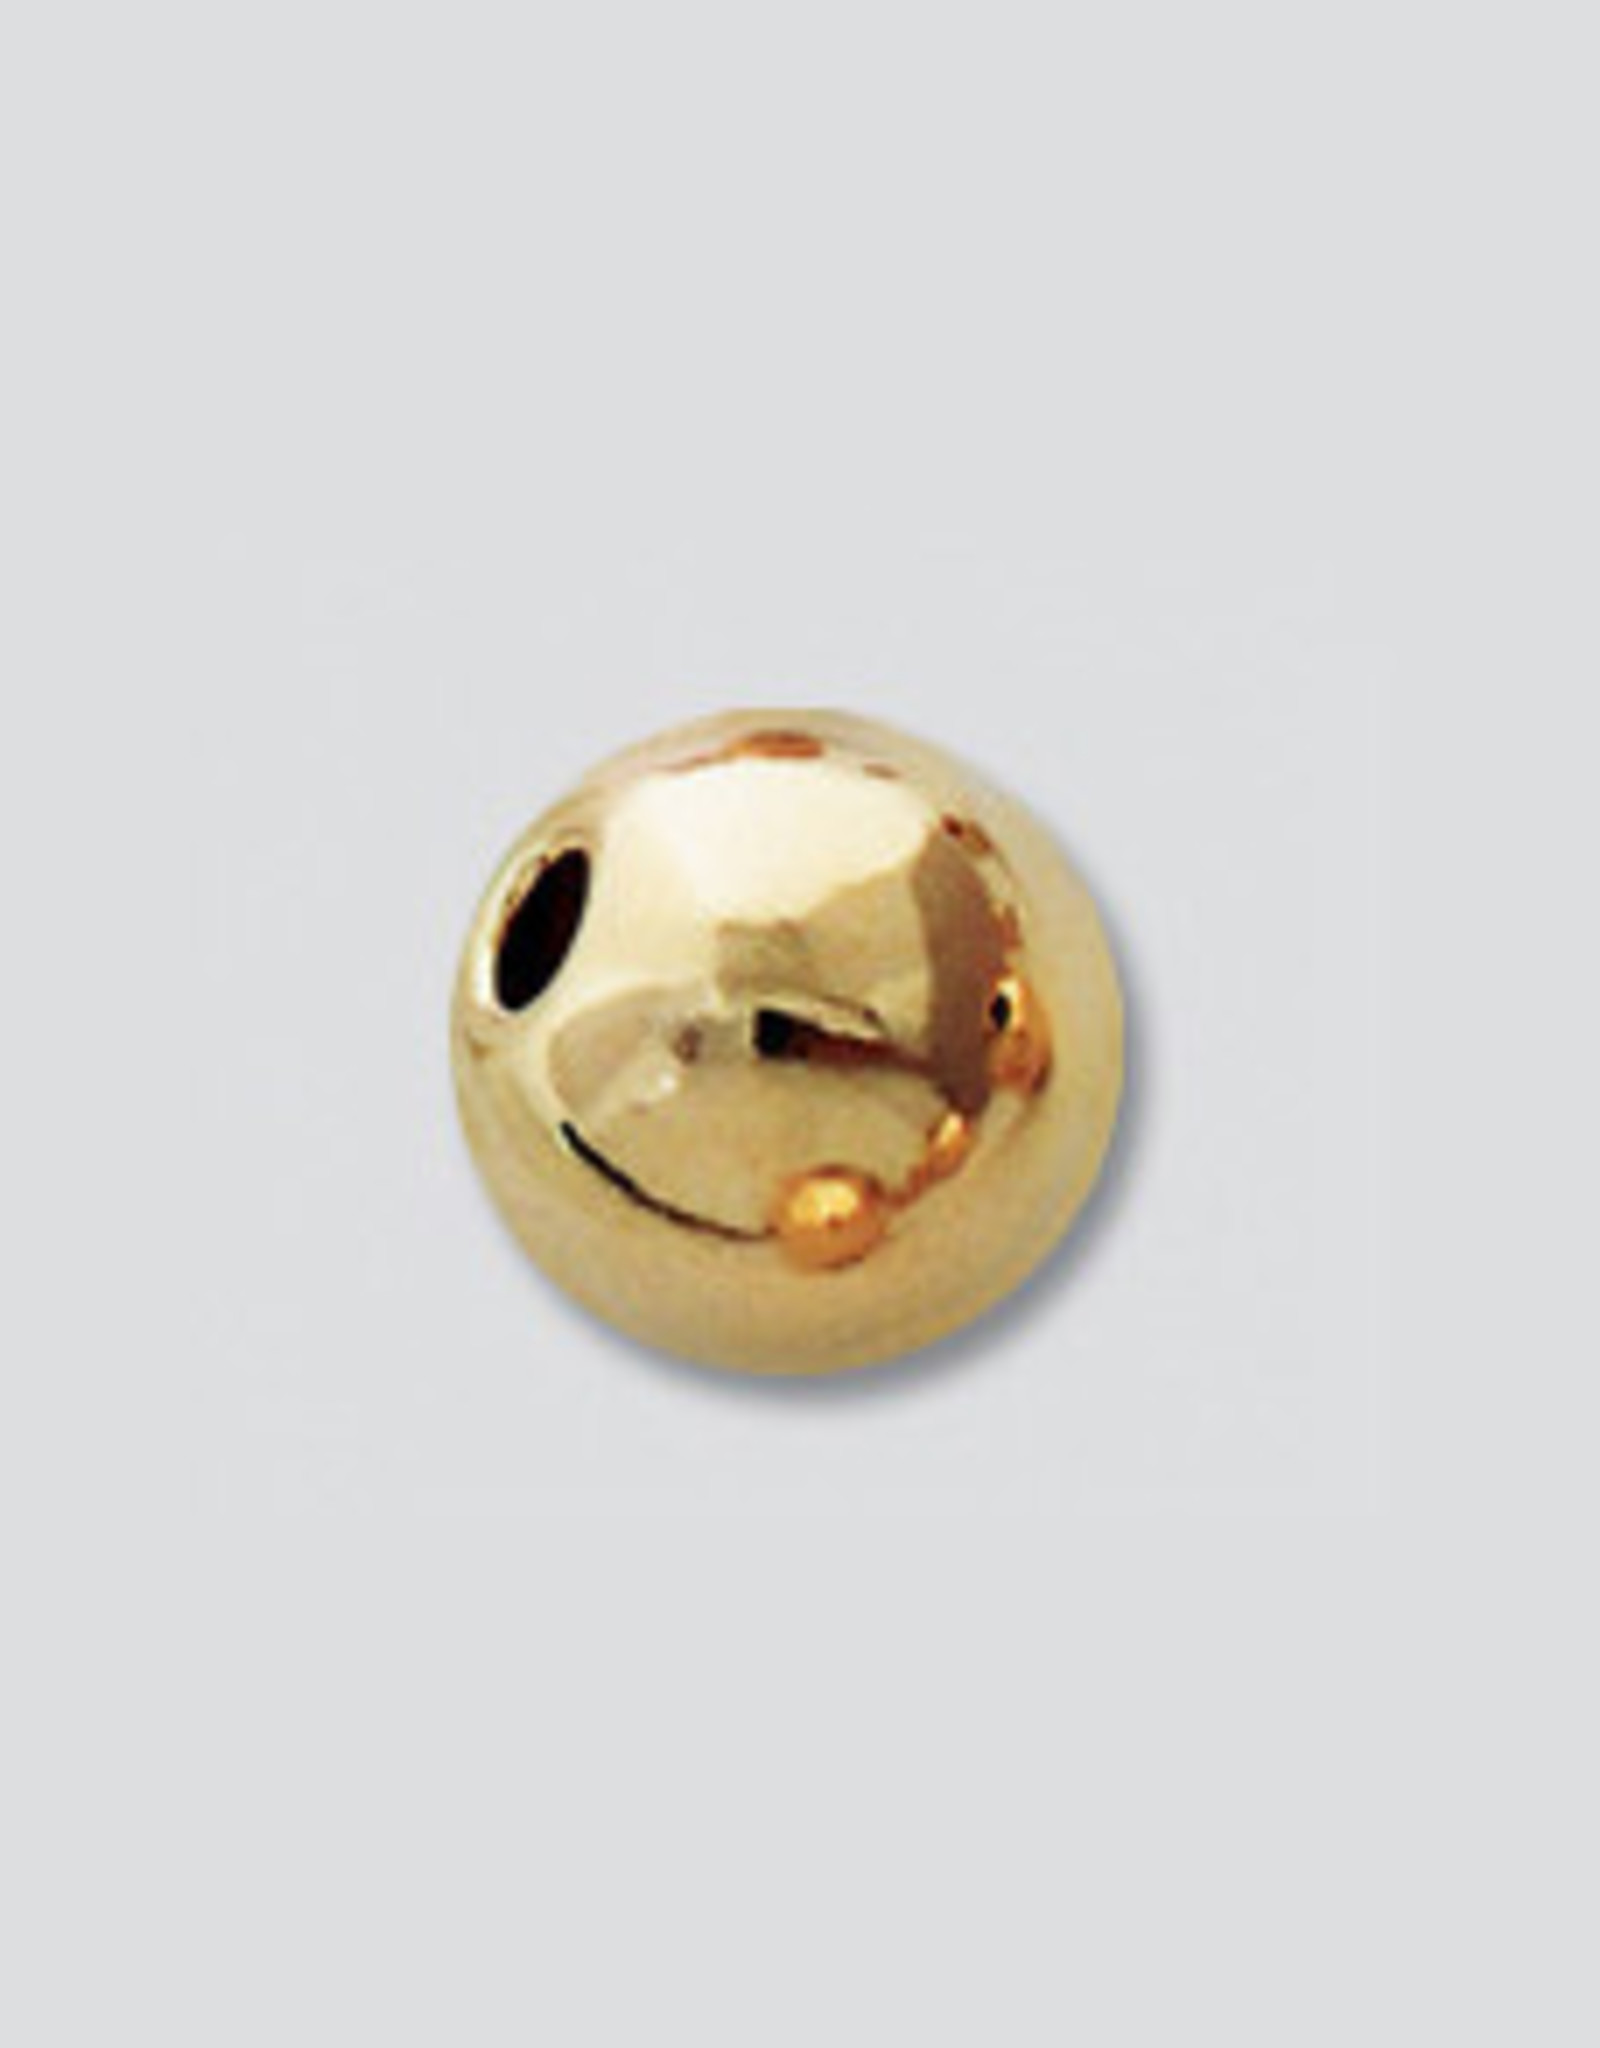 8mm Round Bead 14k Gold Filled Qty 2